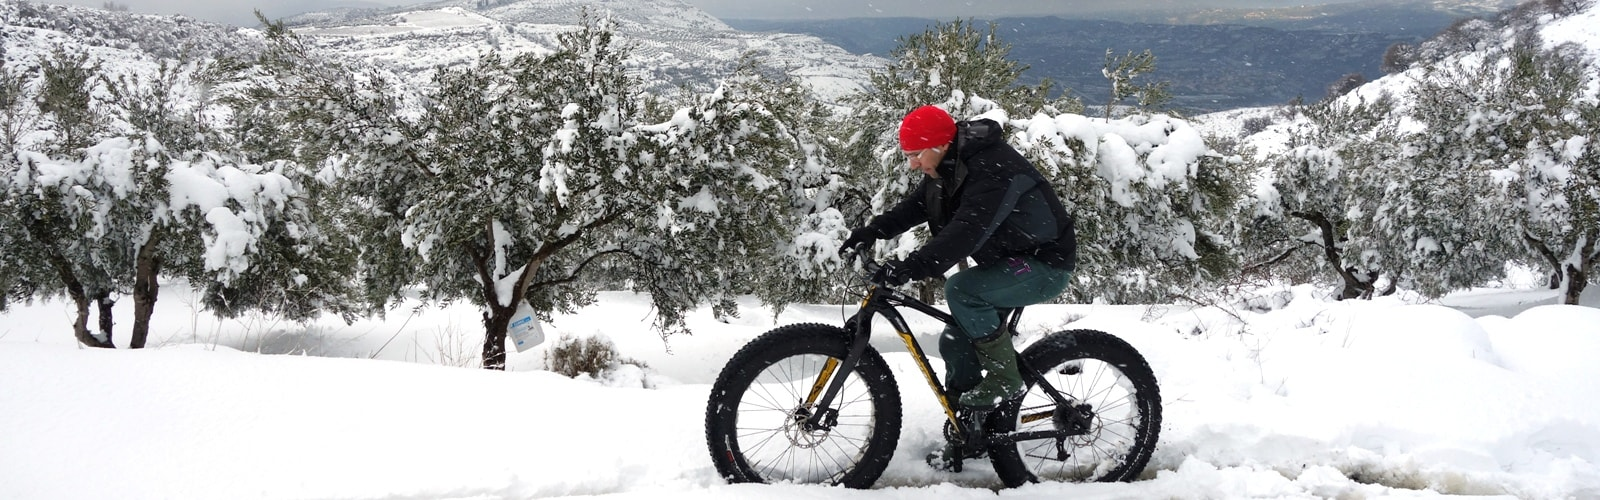 olive-trees-donot-like-snow-an-cold-weather-min